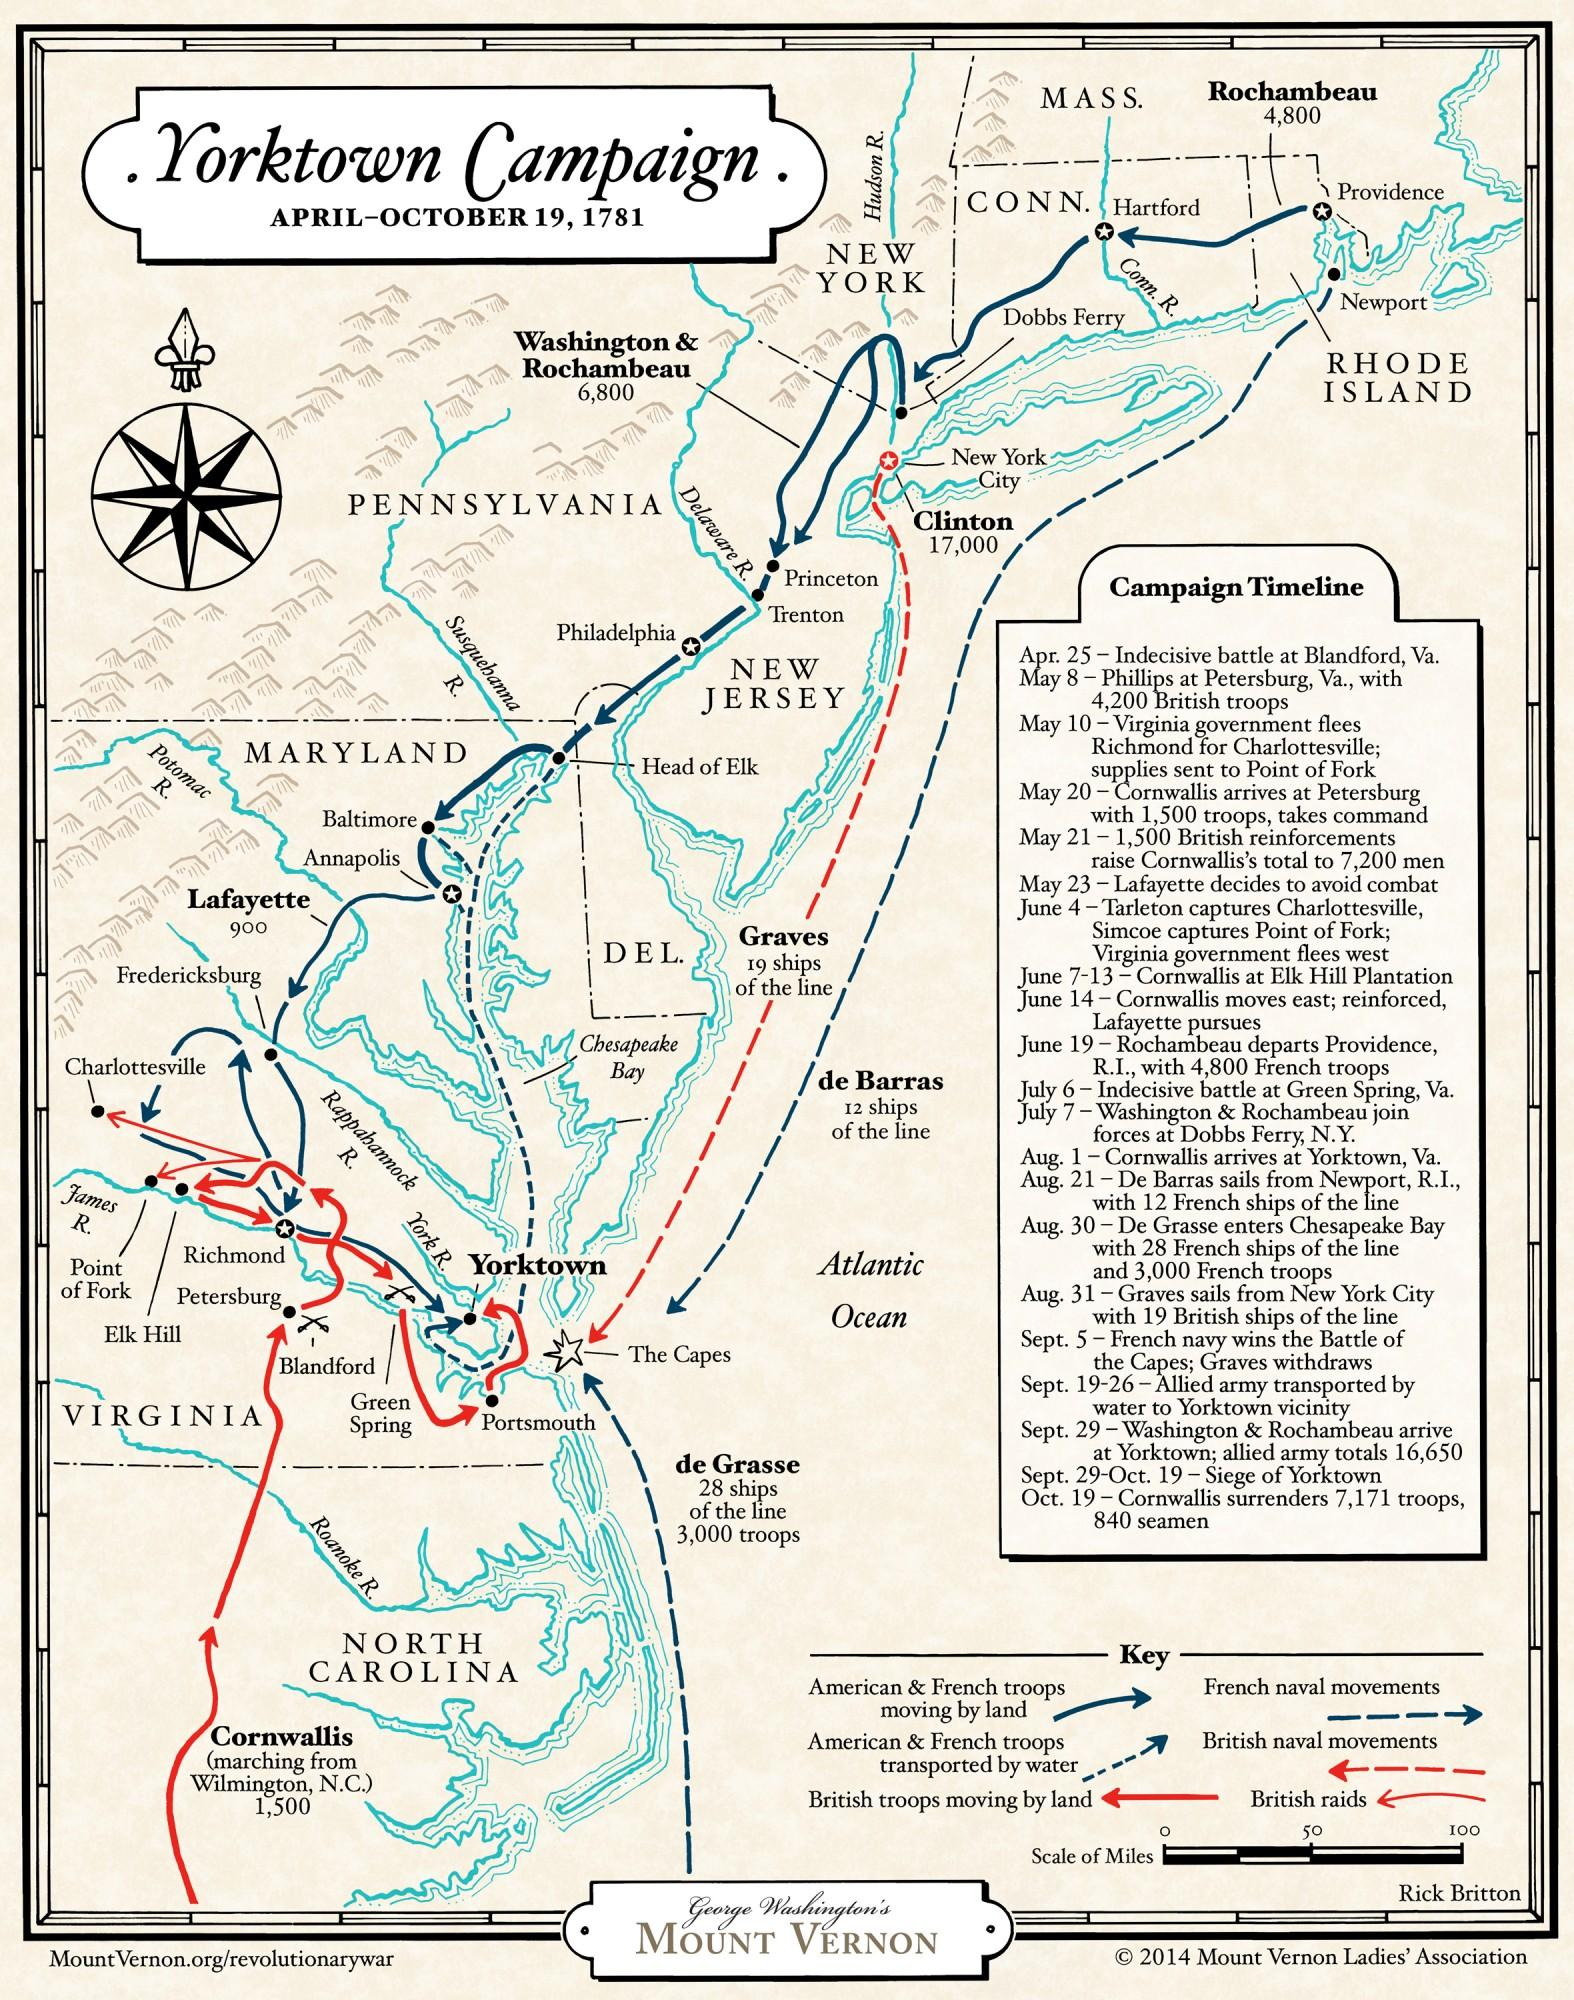 Map: The Yorktown Campaign. Courtesy of the Mount Vernon Ladies' Association.